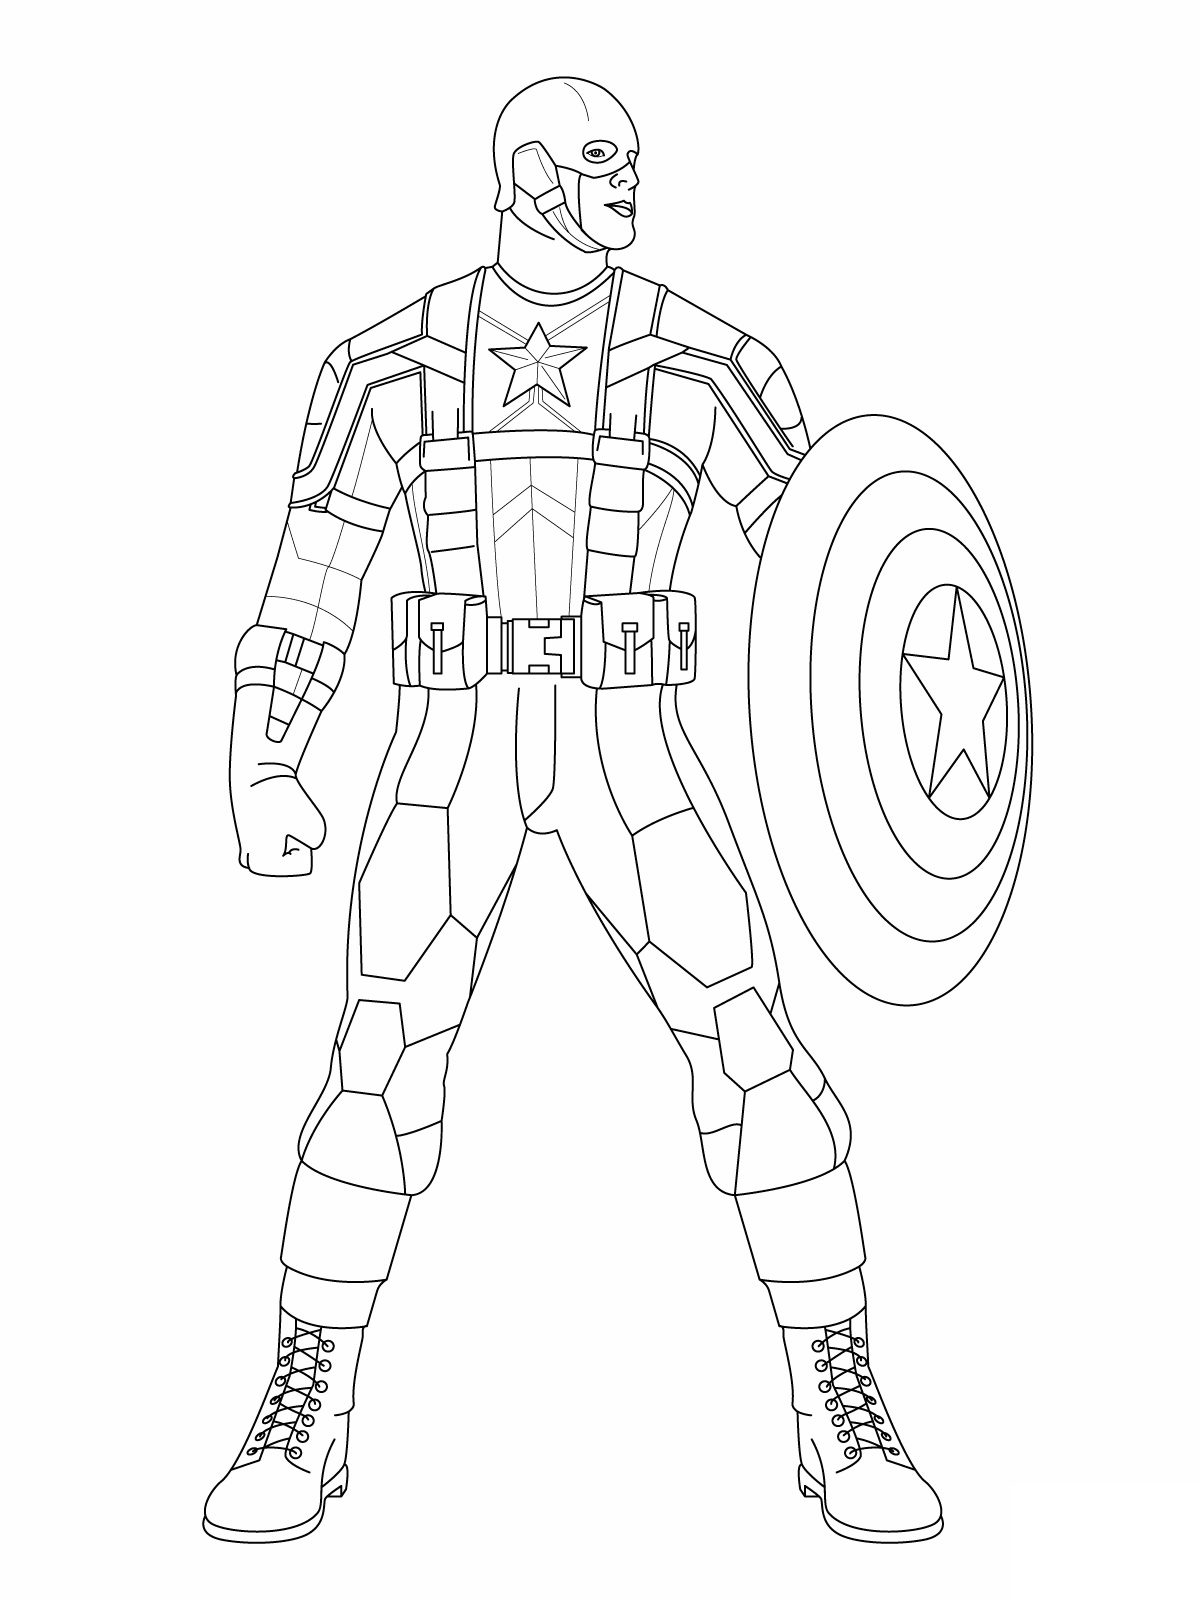 Coloring Pages Captian America Coloring Pages free printable captain america coloring pages for kids photos